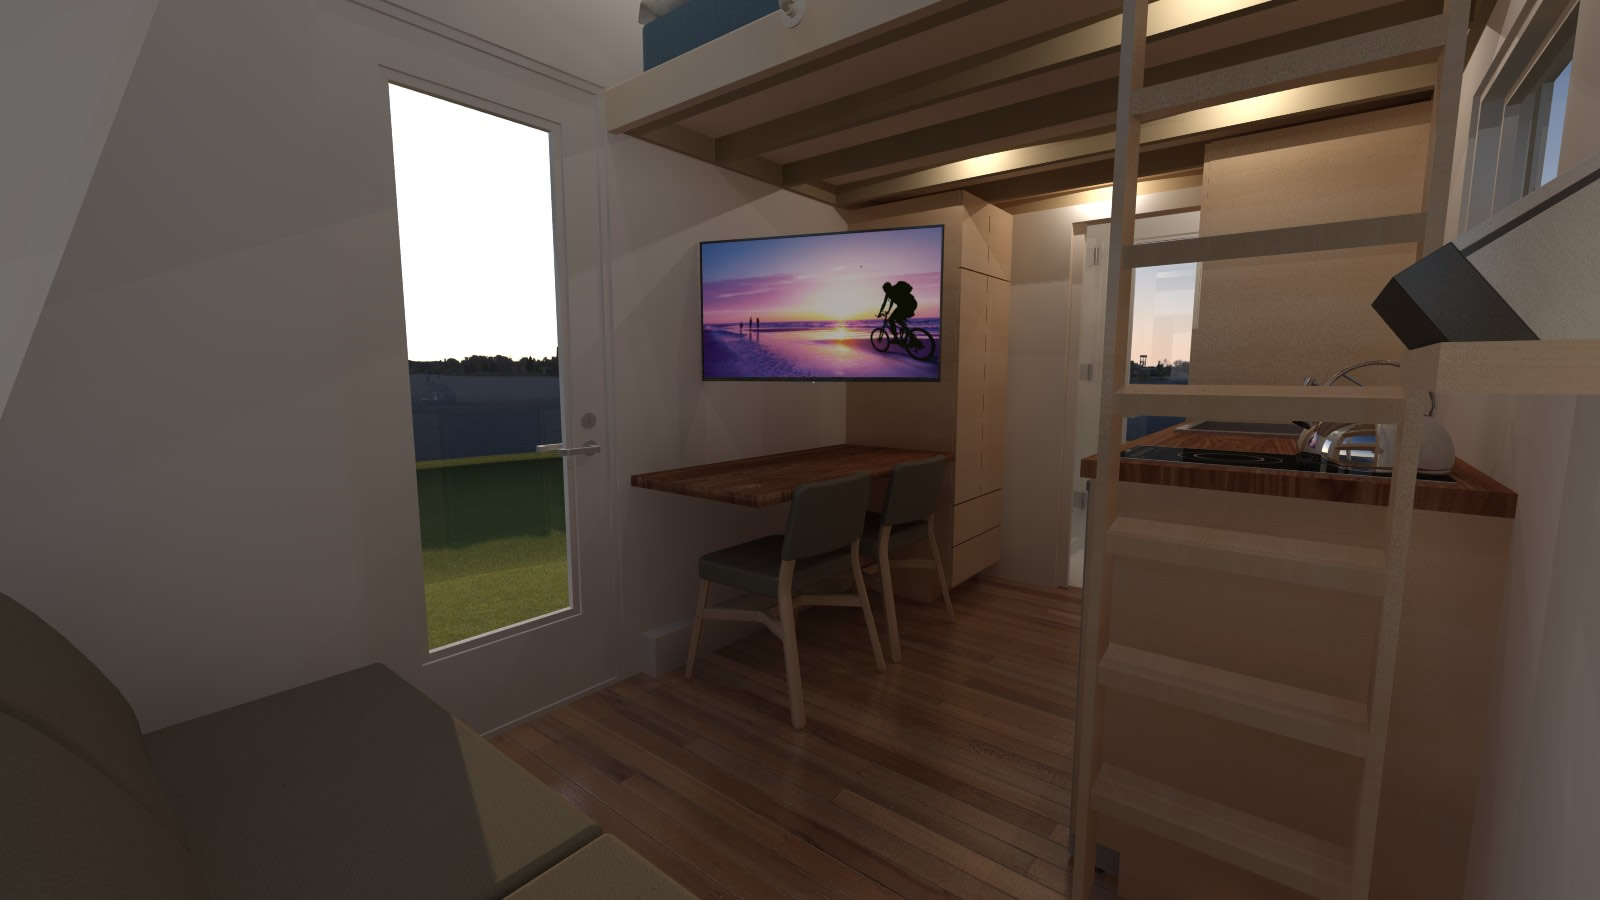 Anchor Bay 16 Tiny House - Home Theater Mode